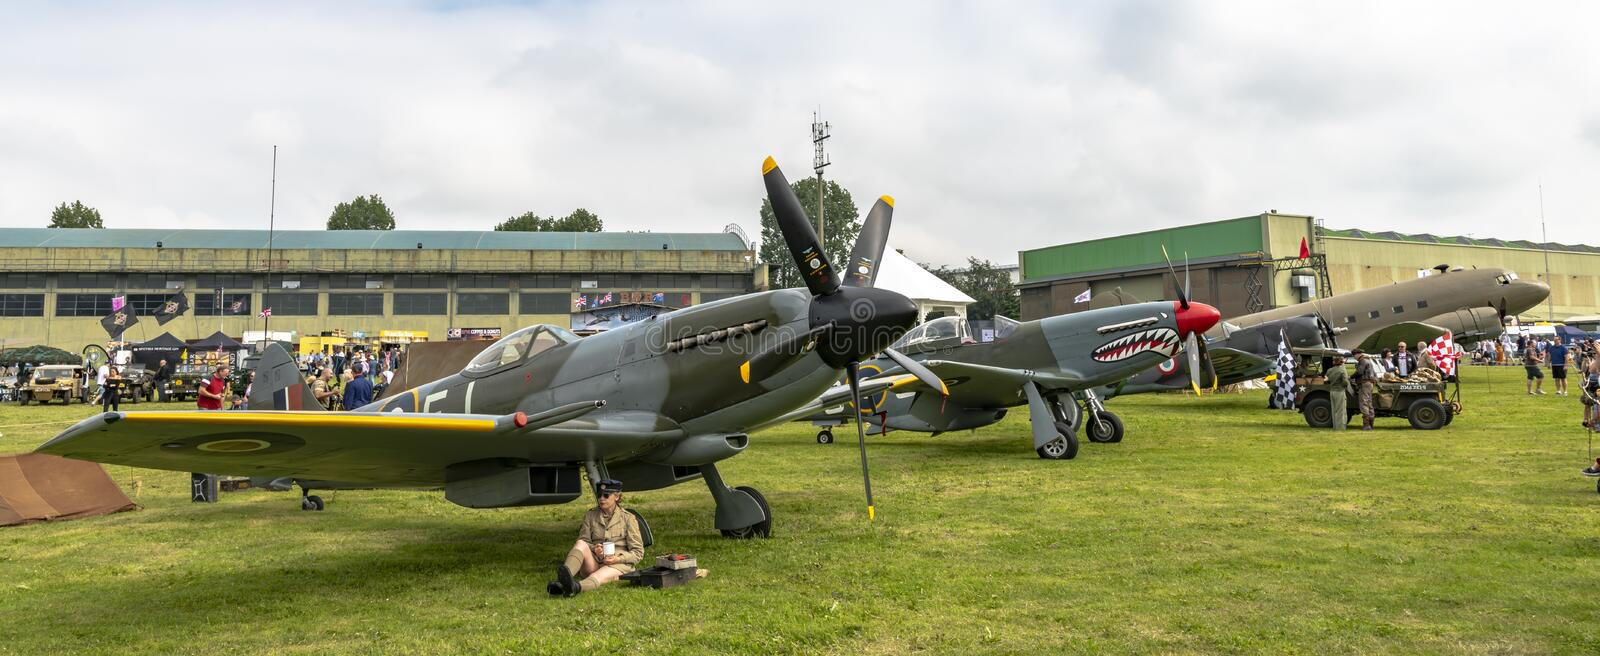 Collection of old world war two planes at an AirShow in UK stock images